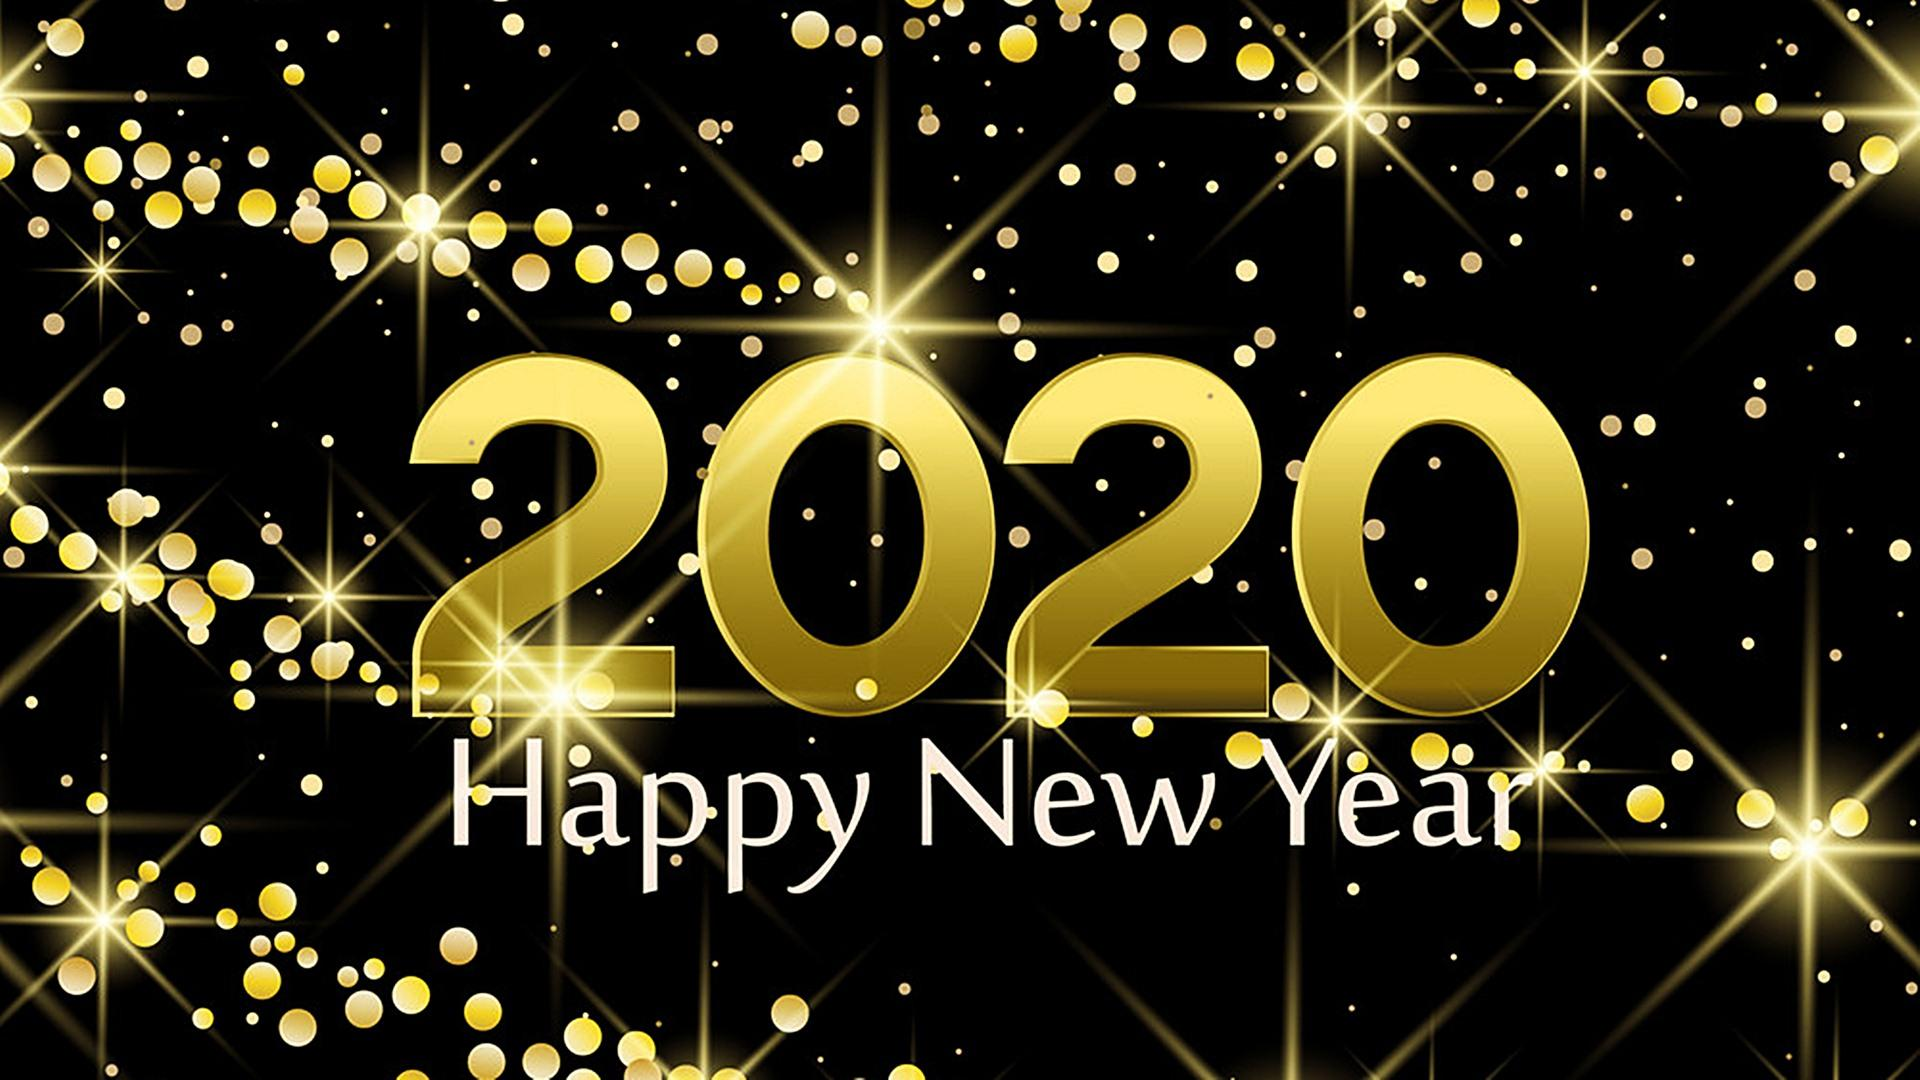 2020 New Year Wallpapers Wallpaper Cave